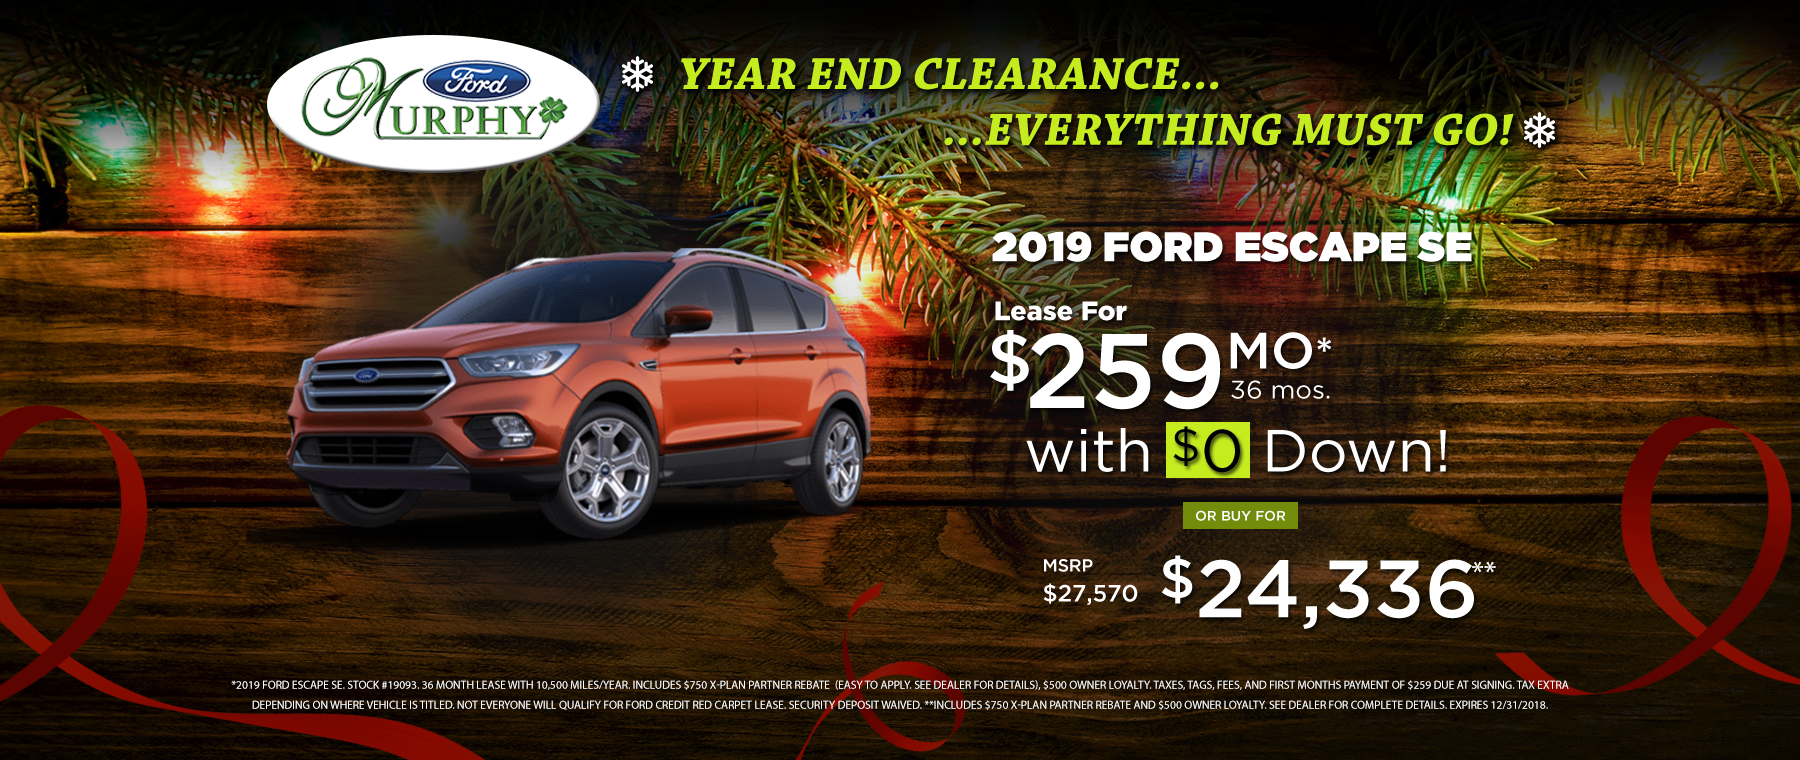 2019 Ford Escape December Lease Offer